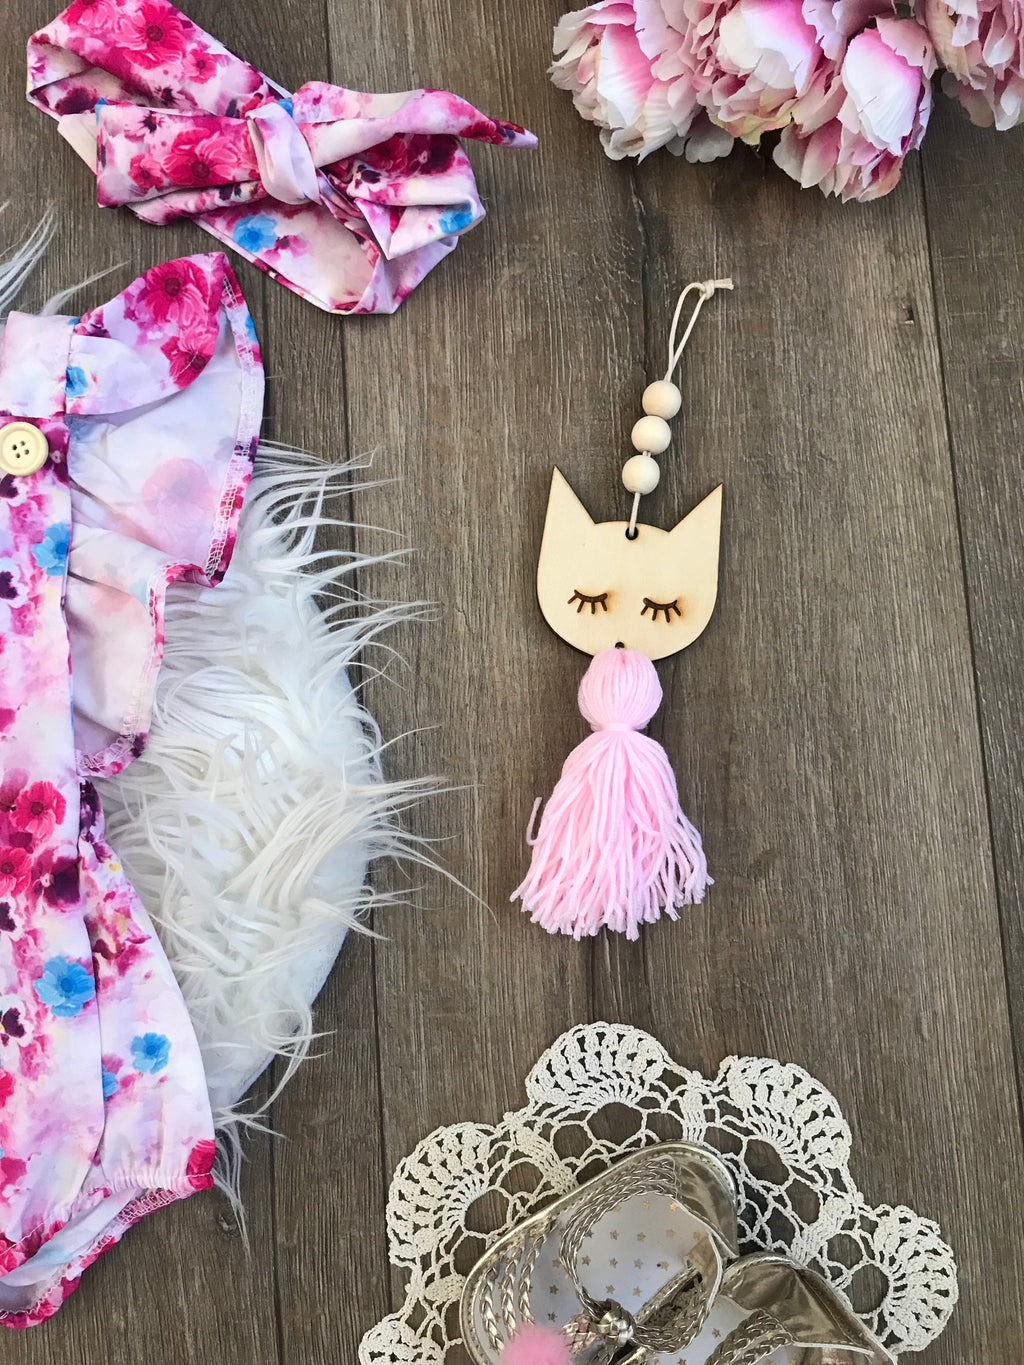 Wooden Tassel Decor